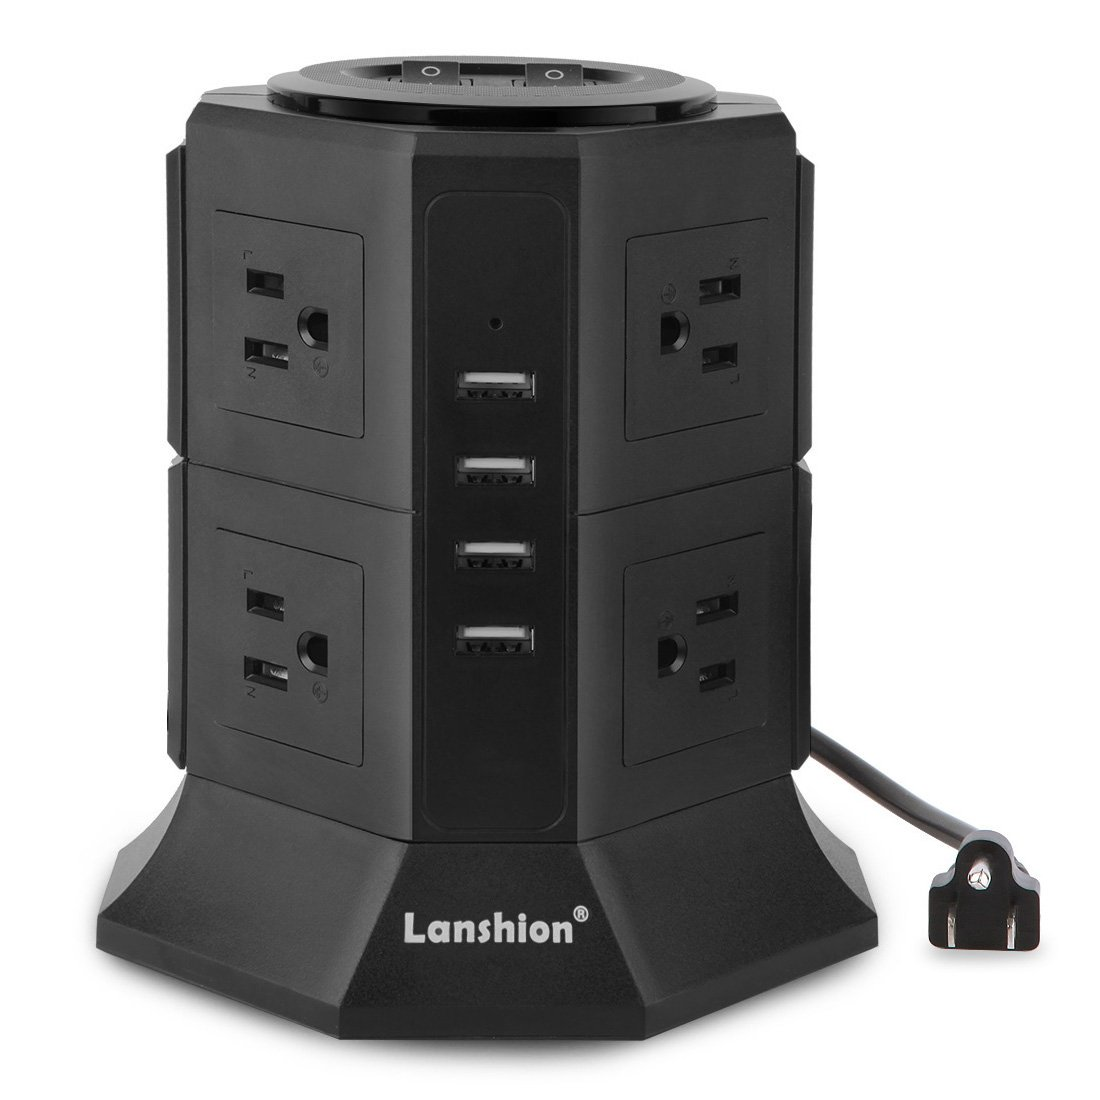 Lanshion 8 Outlet Surge Protector Power Strip with 4 USB Charging Ports 1875W Desktop USB Charging Station with 6.5-Feet Long Power Cord, 1000 Joules,UL Listed (Black) by Lanshion